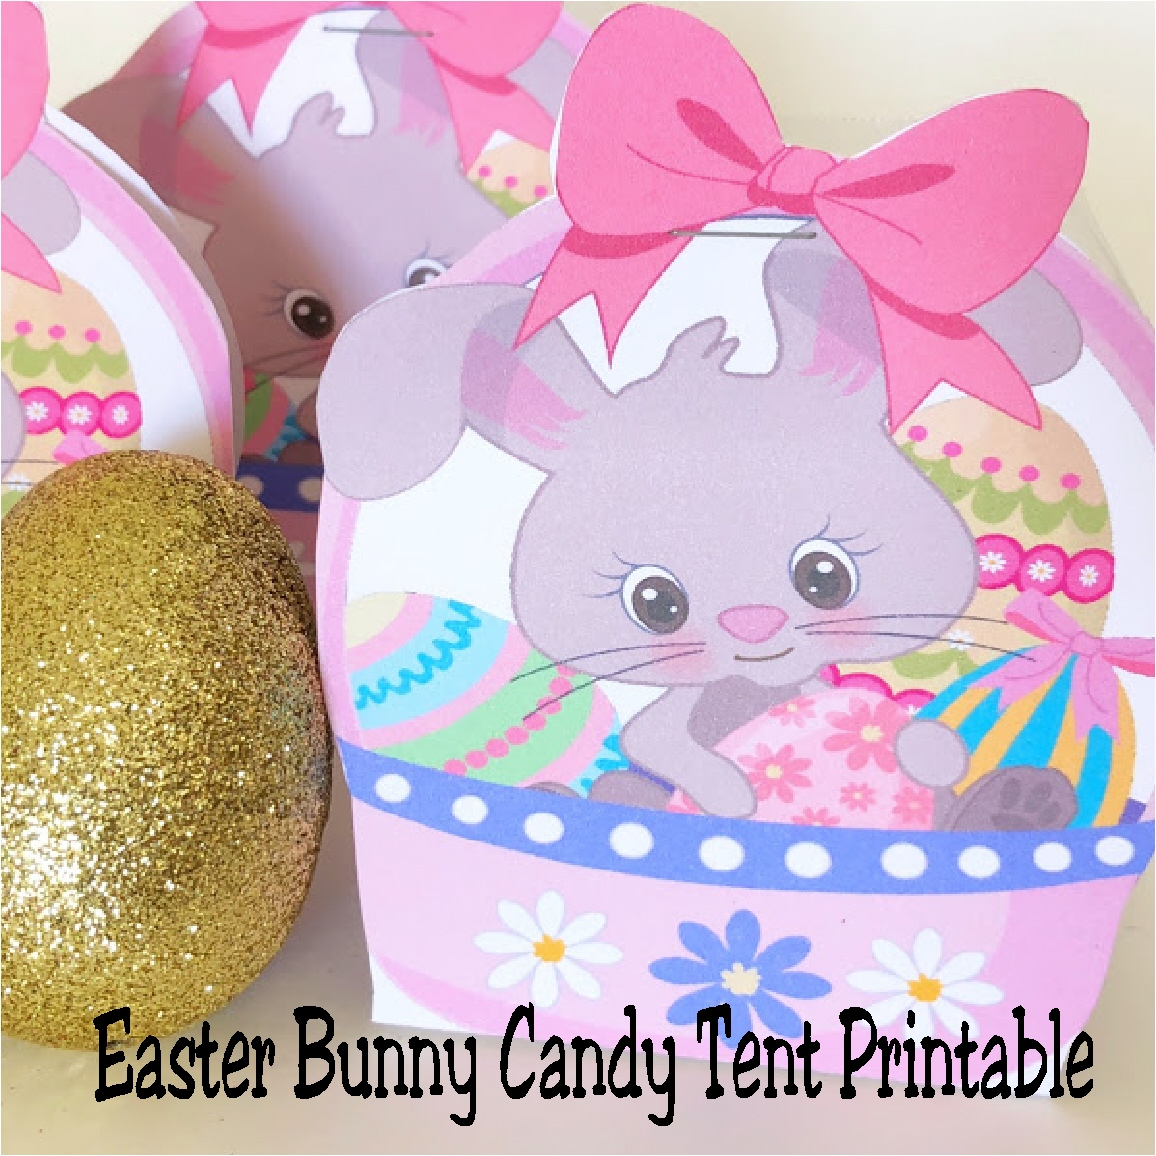 Easy and cute easter basket printable candy tent everyday parties they are the perfect easy and cute party favor for negle Gallery